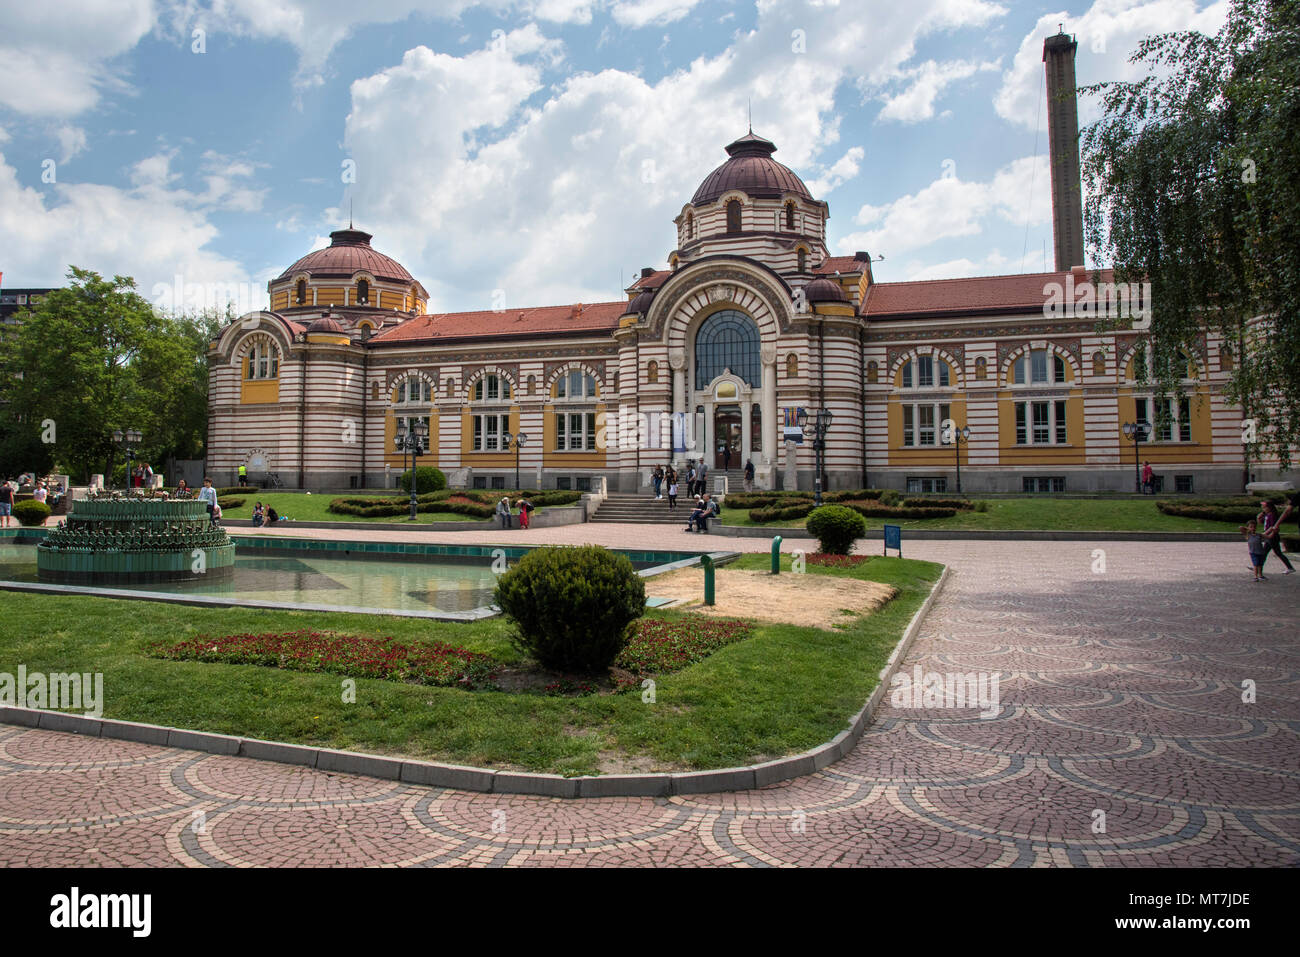 Central Mineral Baths building in Sofia, Bulgaria - Stock Image